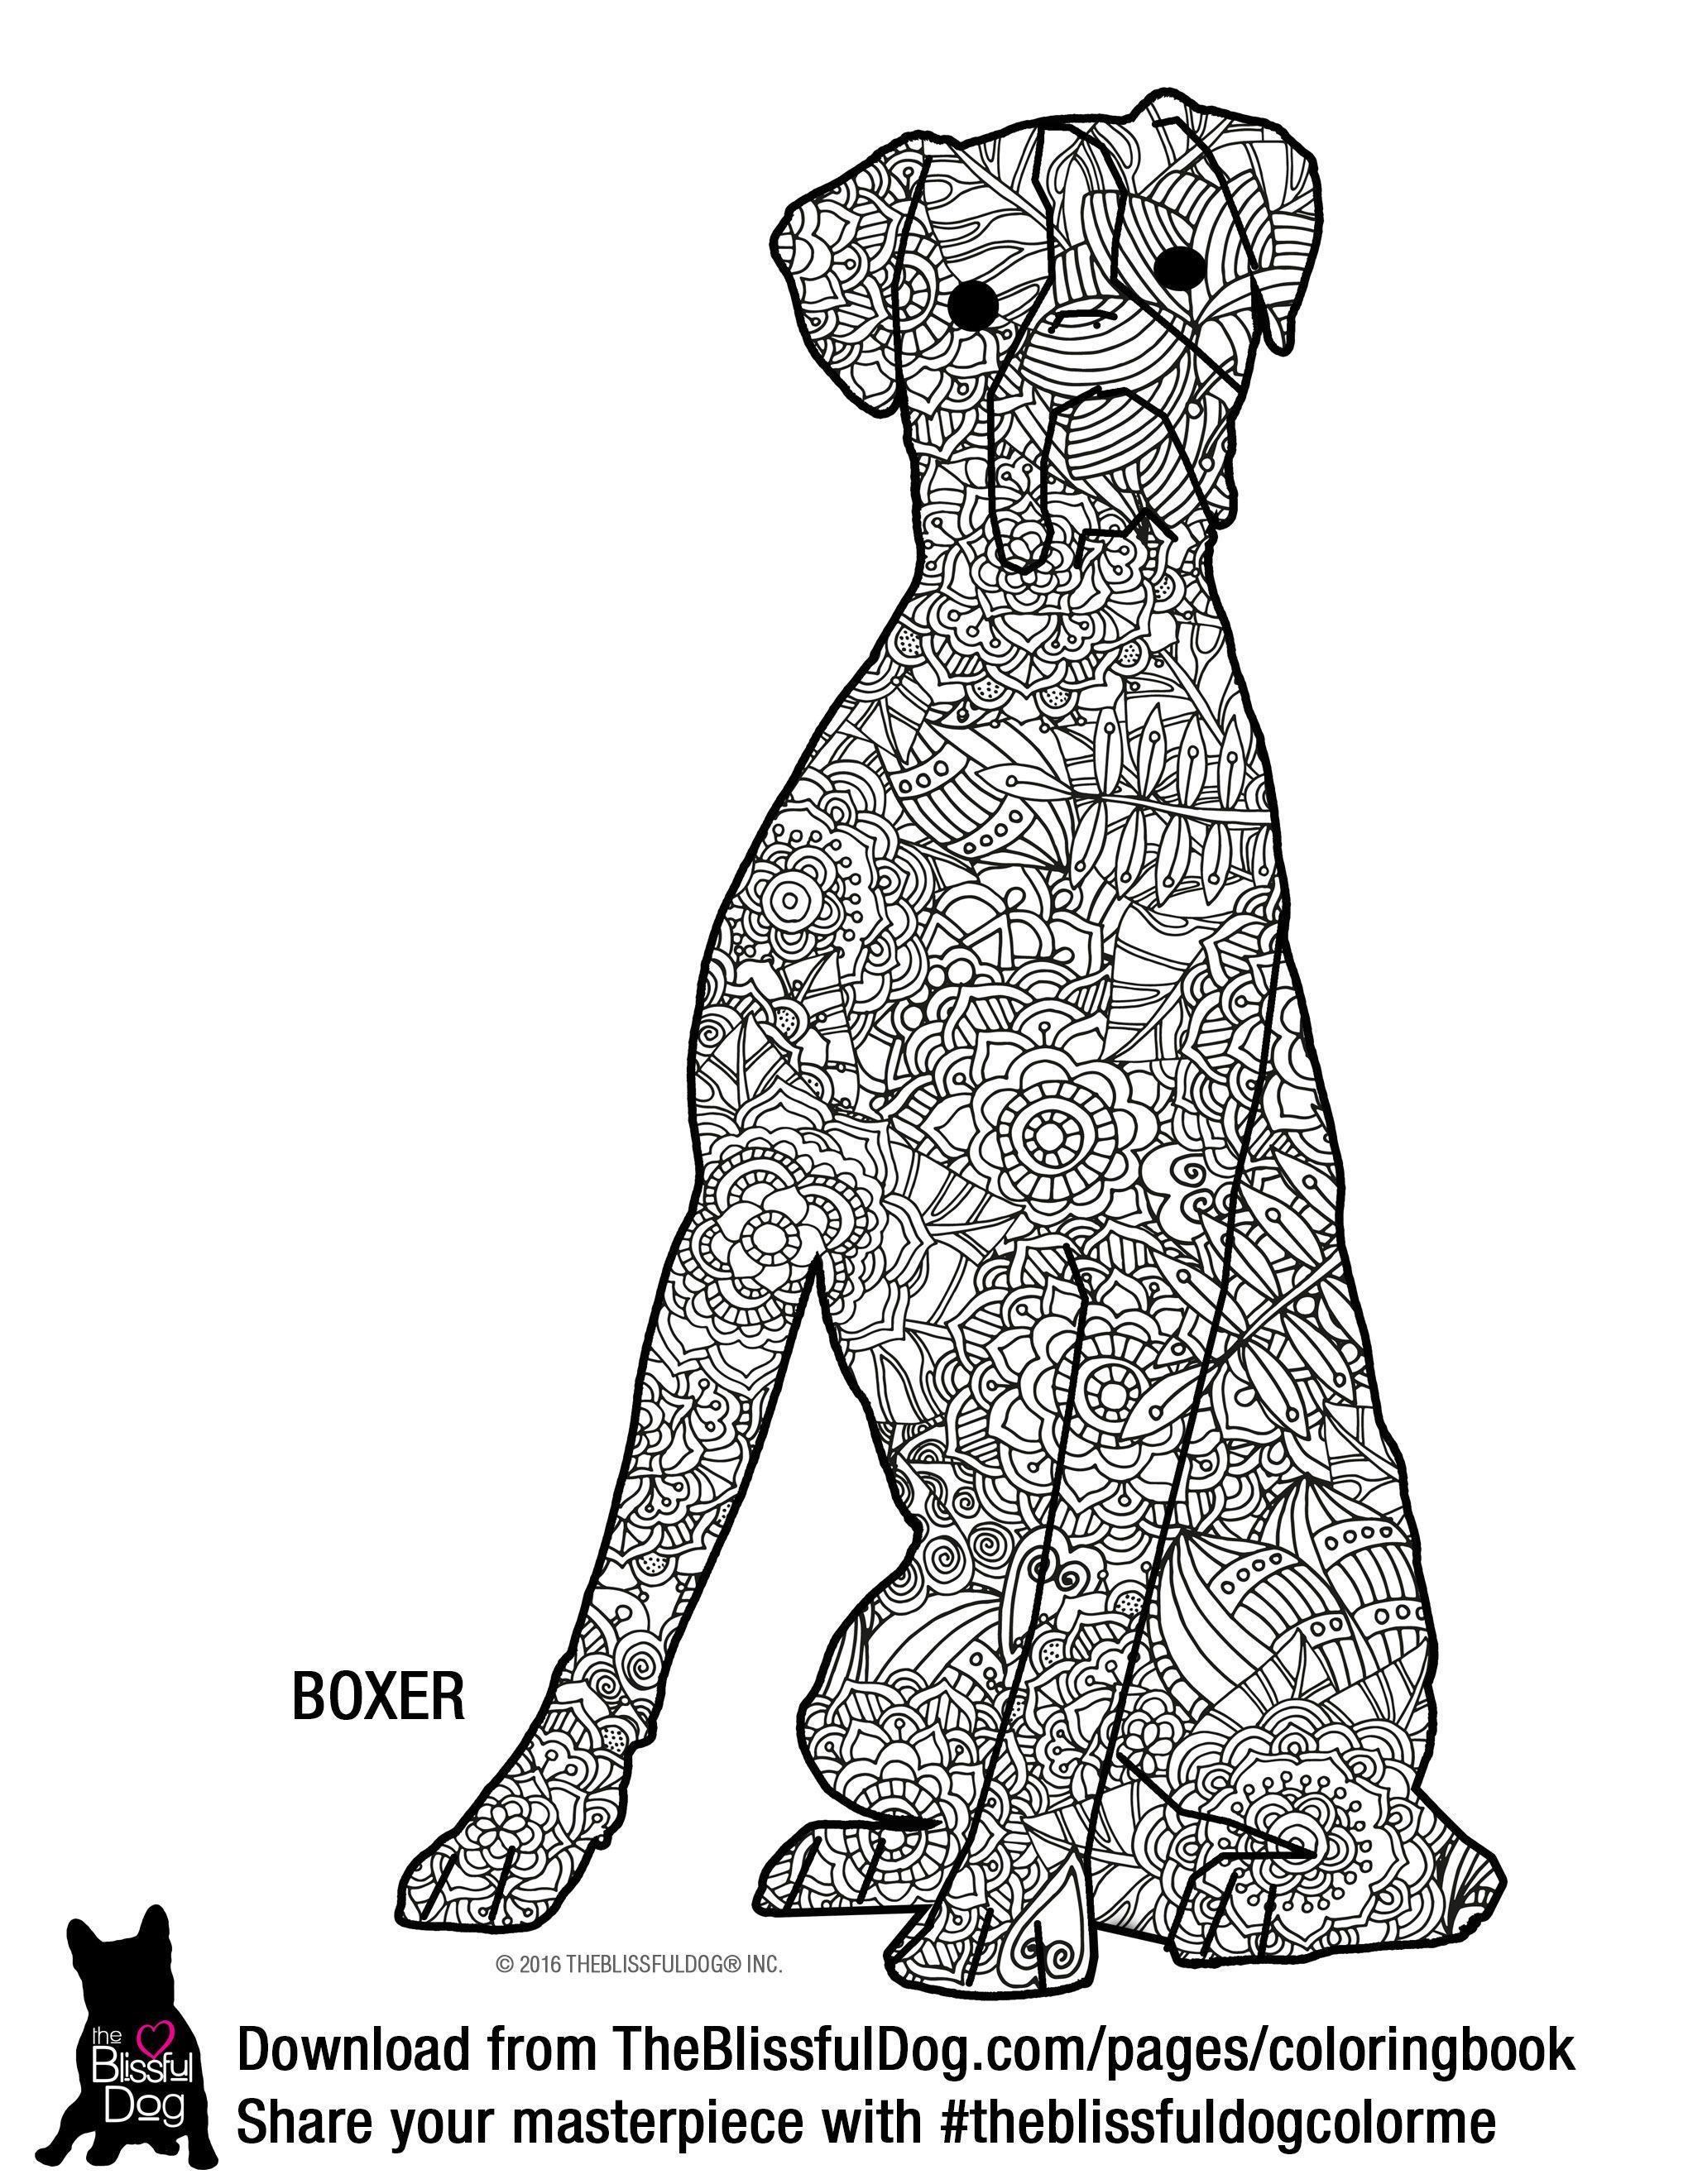 And The Boxer Coloring Book Page This Is A Harder One Hehehe Dog Coloring Book Puppy Coloring Pages Dog Coloring Page